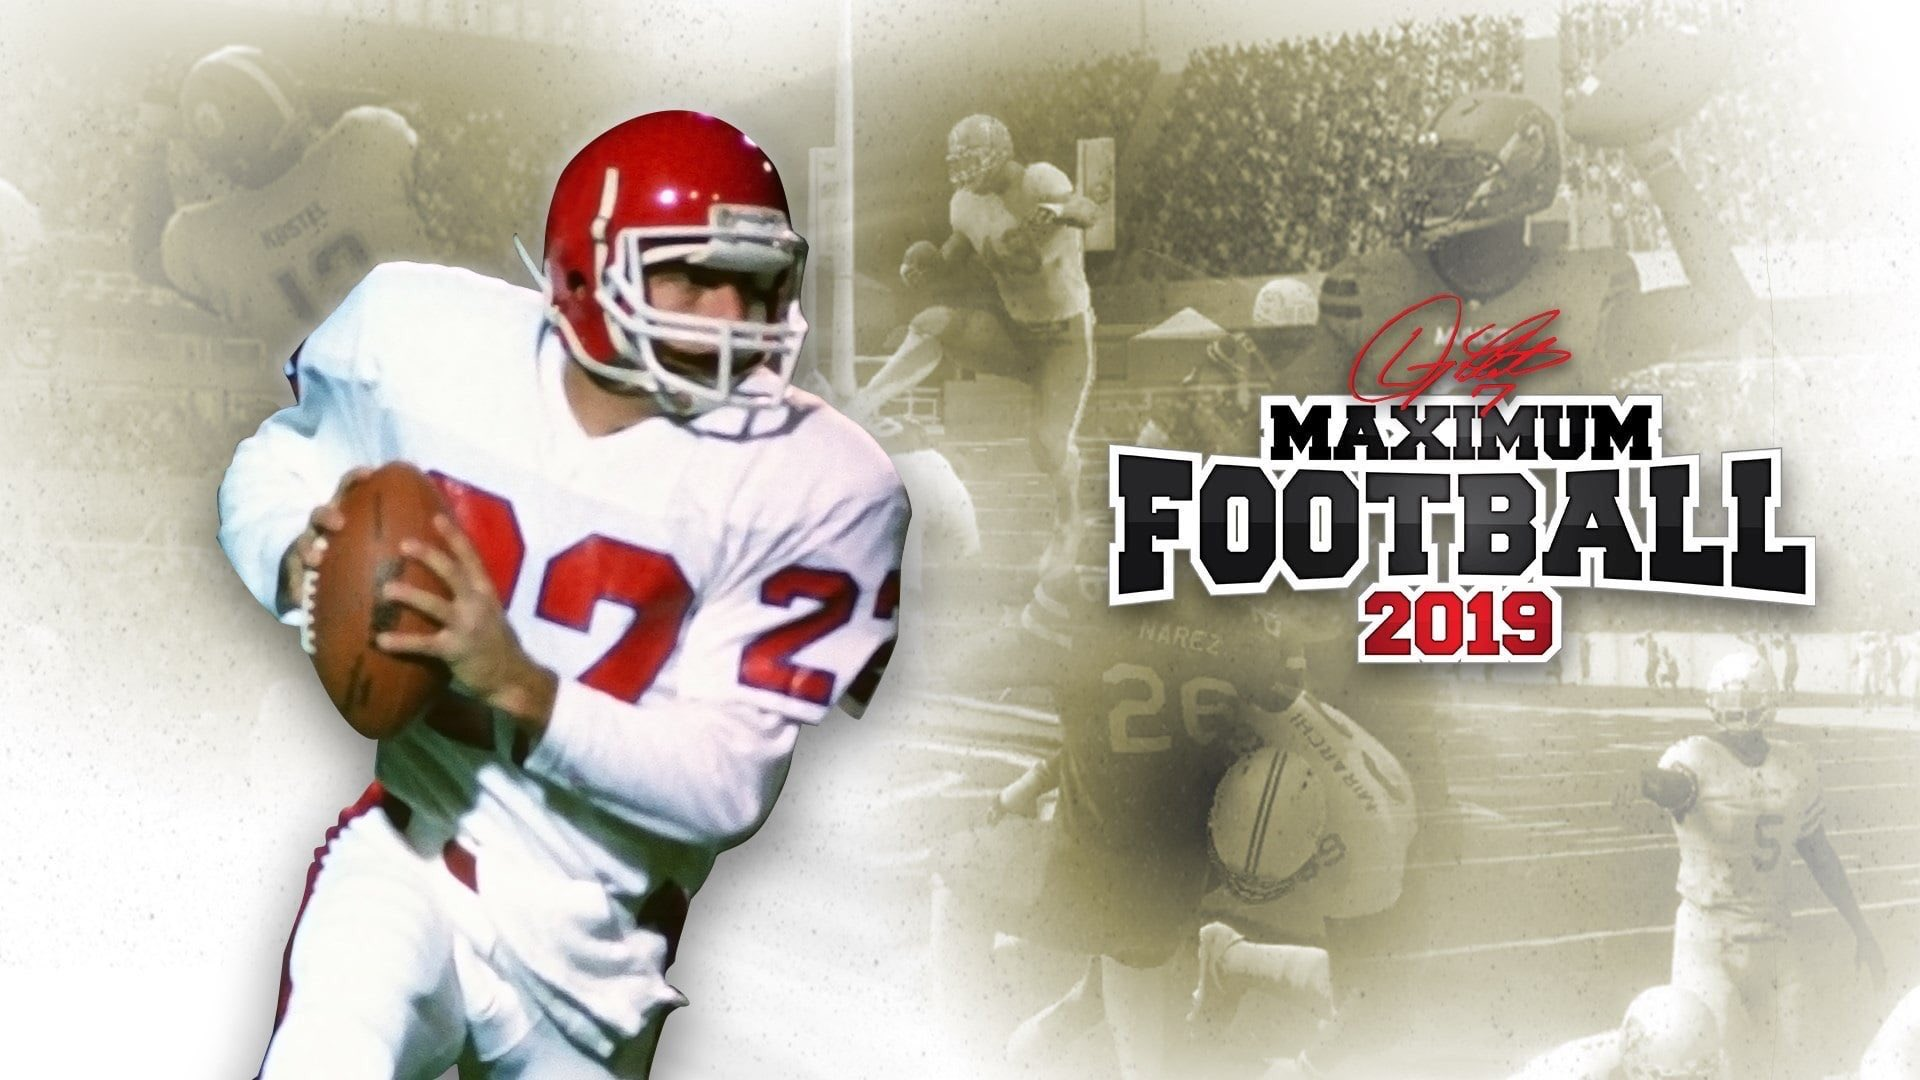 Doug Flutie's Maximum Football 2019 Releases Today Gameplay videos and trailers within